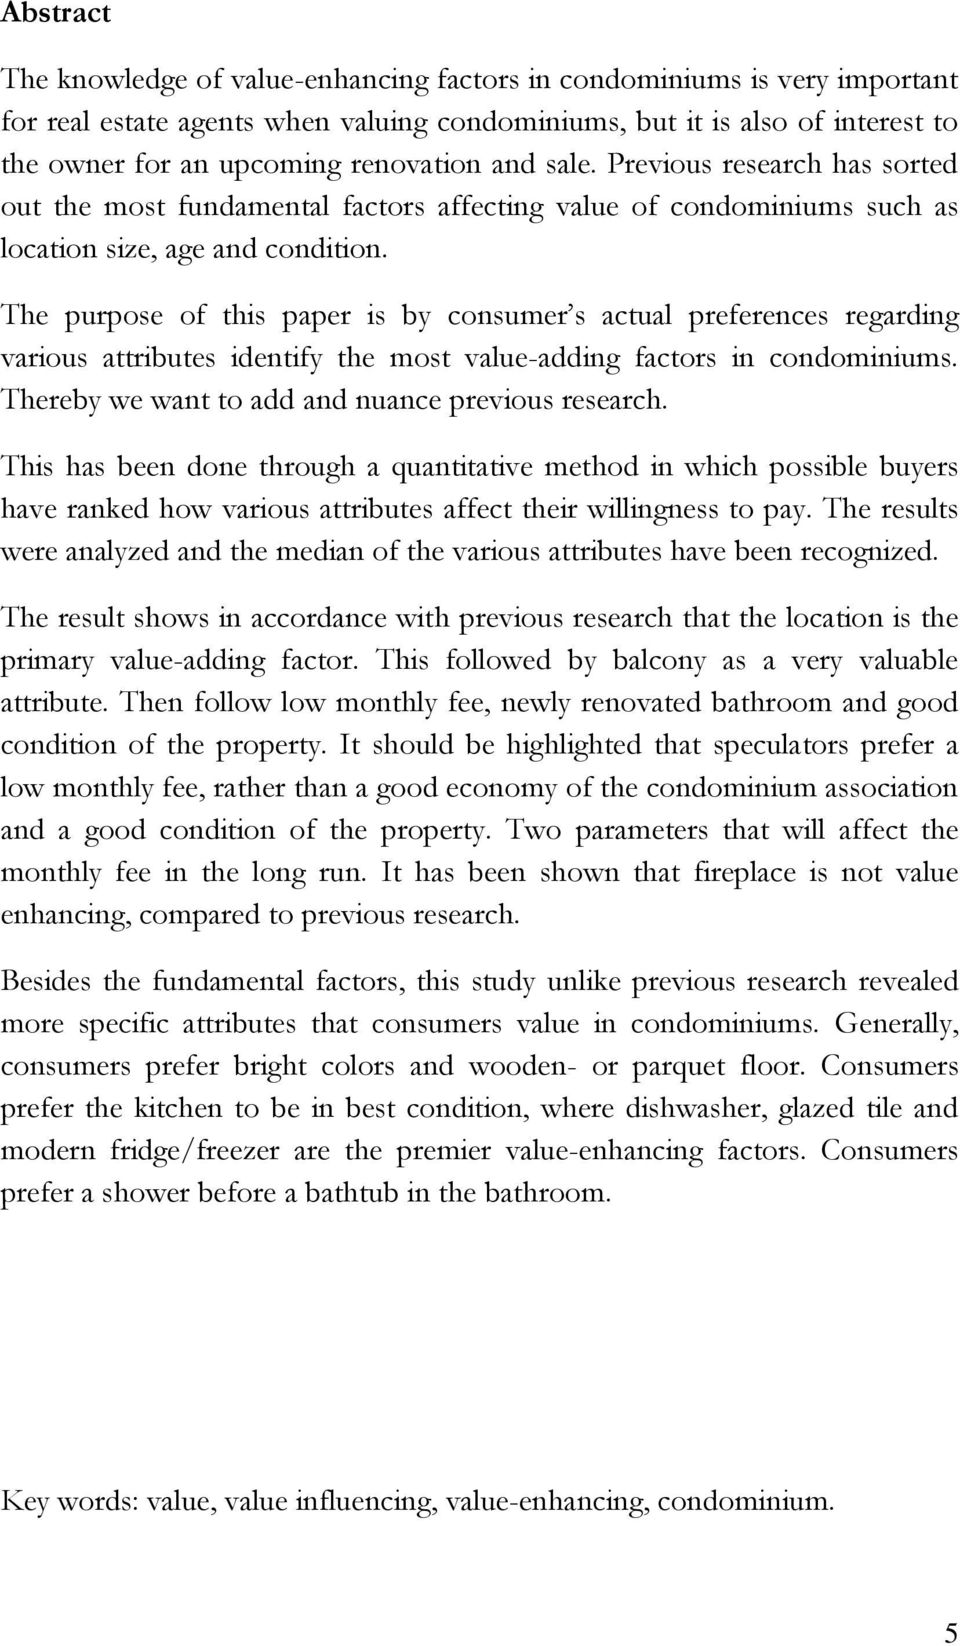 The purpose of this paper is by consumer s actual preferences regarding various attributes identify the most value-adding factors in condominiums. Thereby we want to add and nuance previous research.